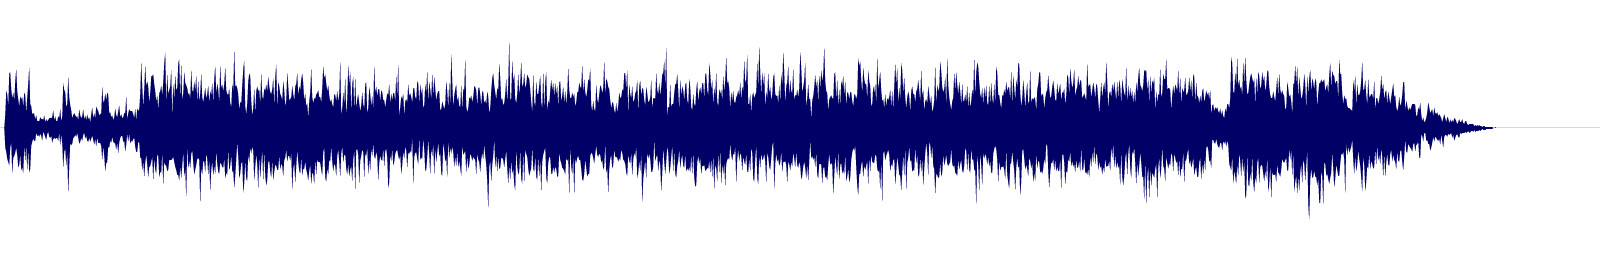 waveform of track #101881